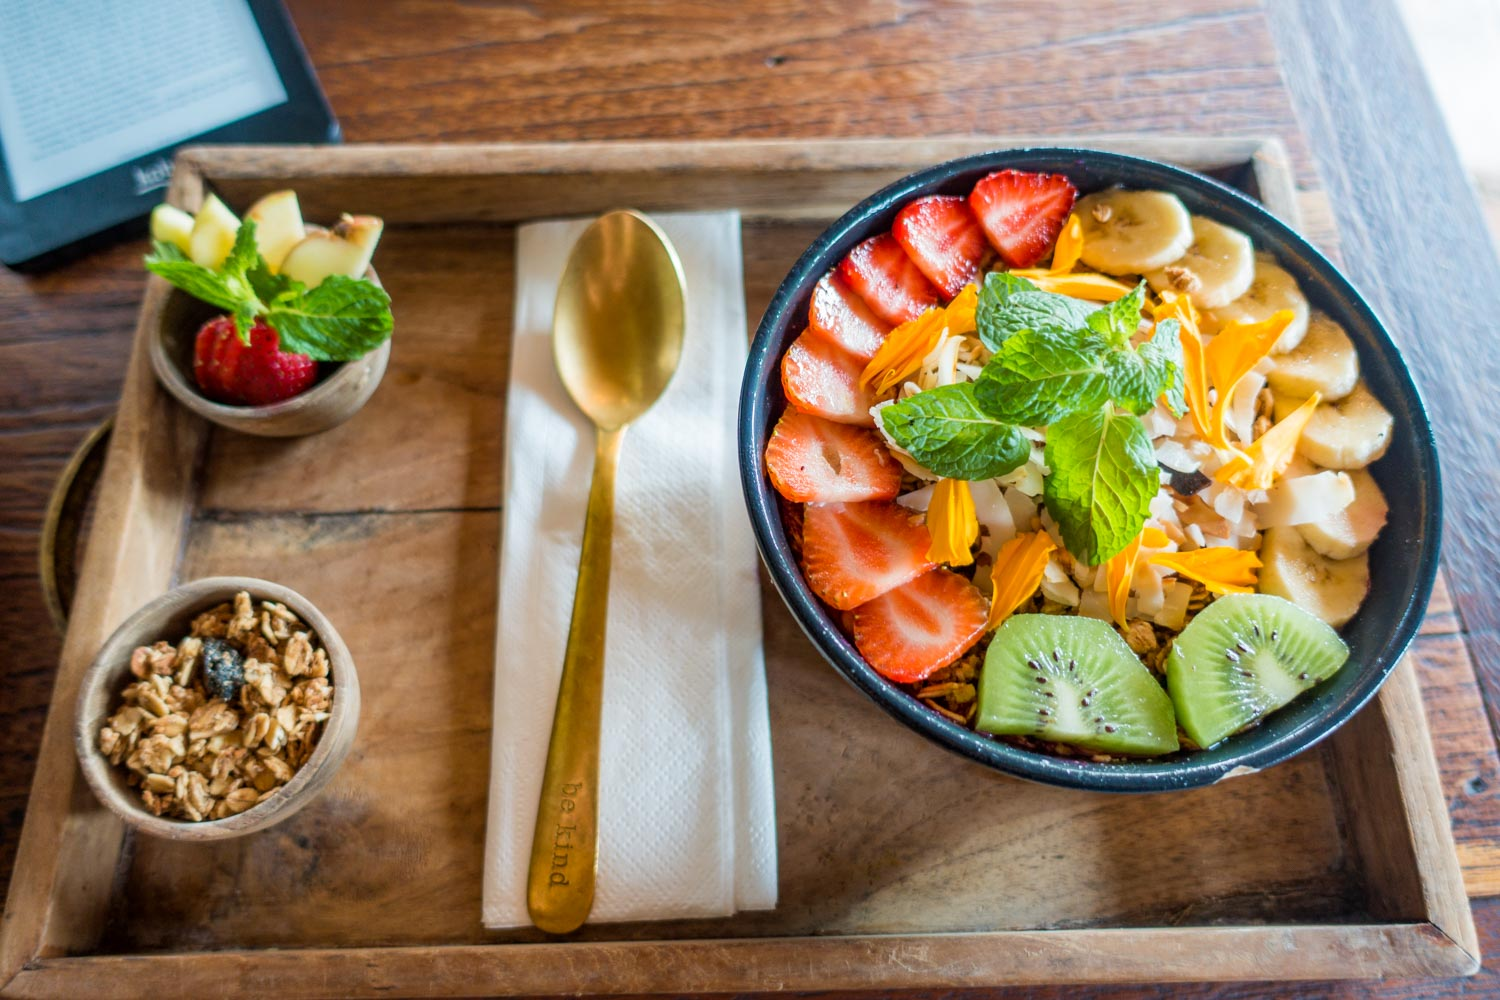 2.)Bali(Indonesia) - I personally could live off the fresh smoothie bowls and salad options, but try out the local dish gado gado.